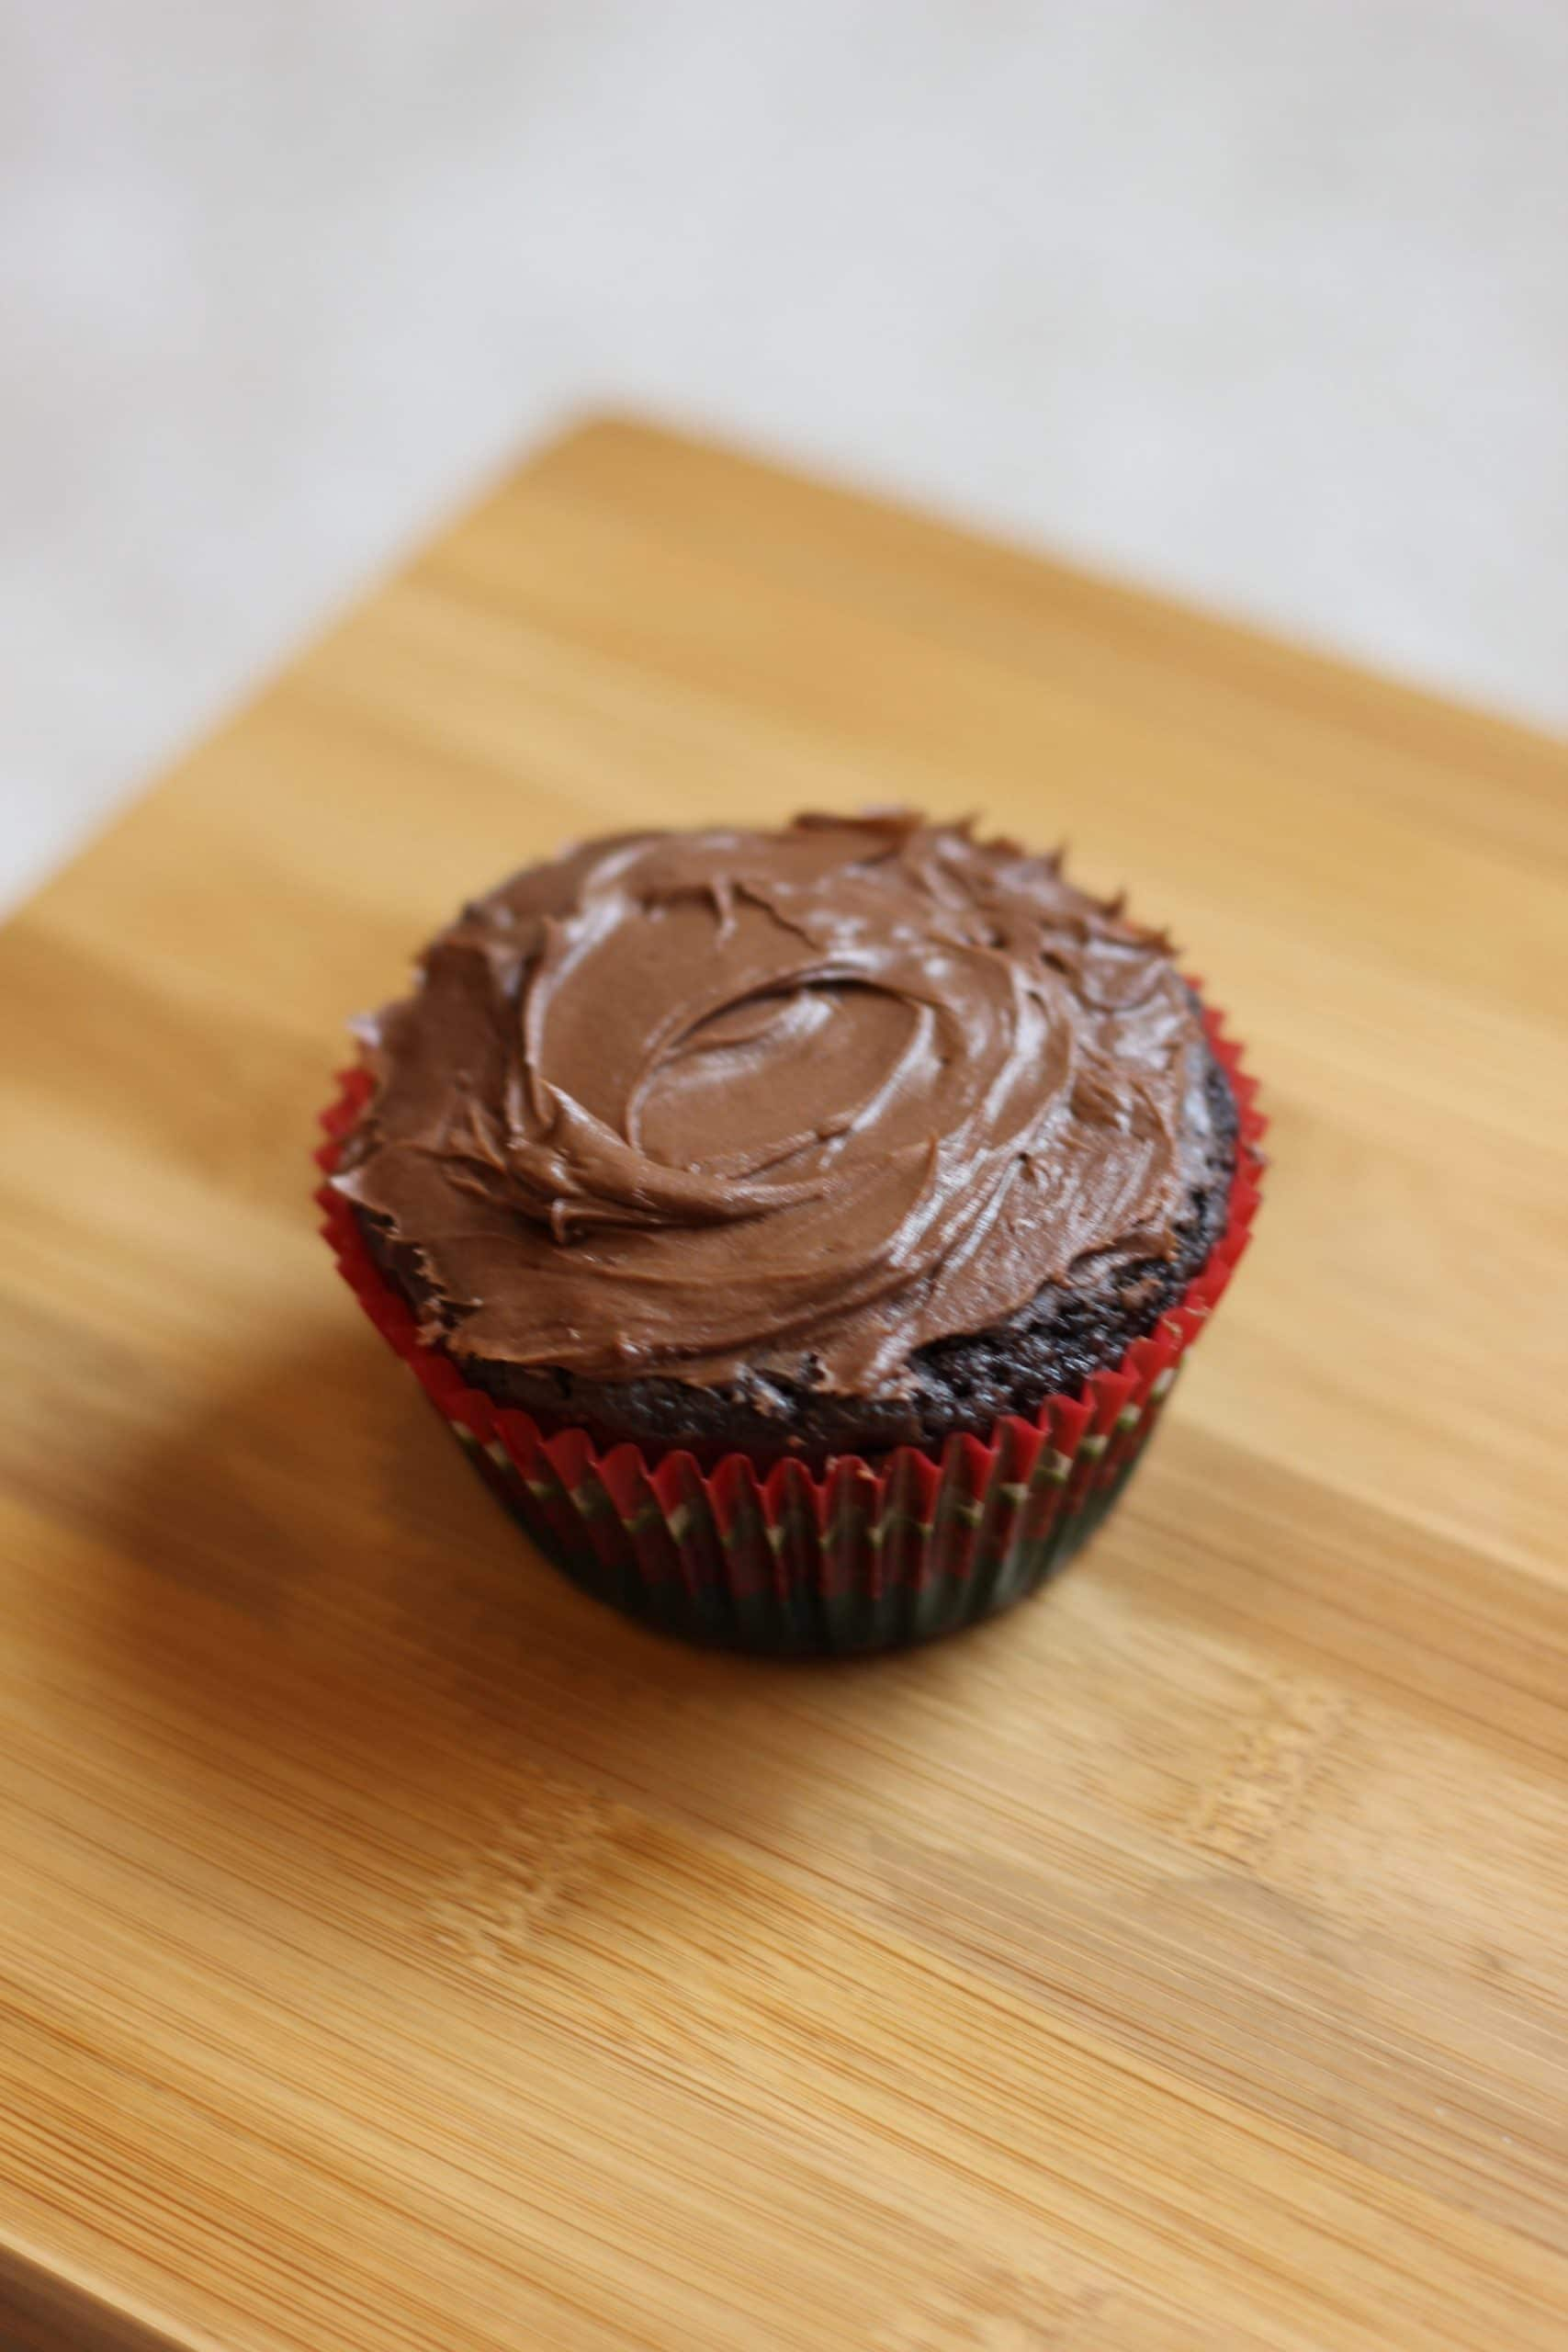 cupcake with chocolate frosting.